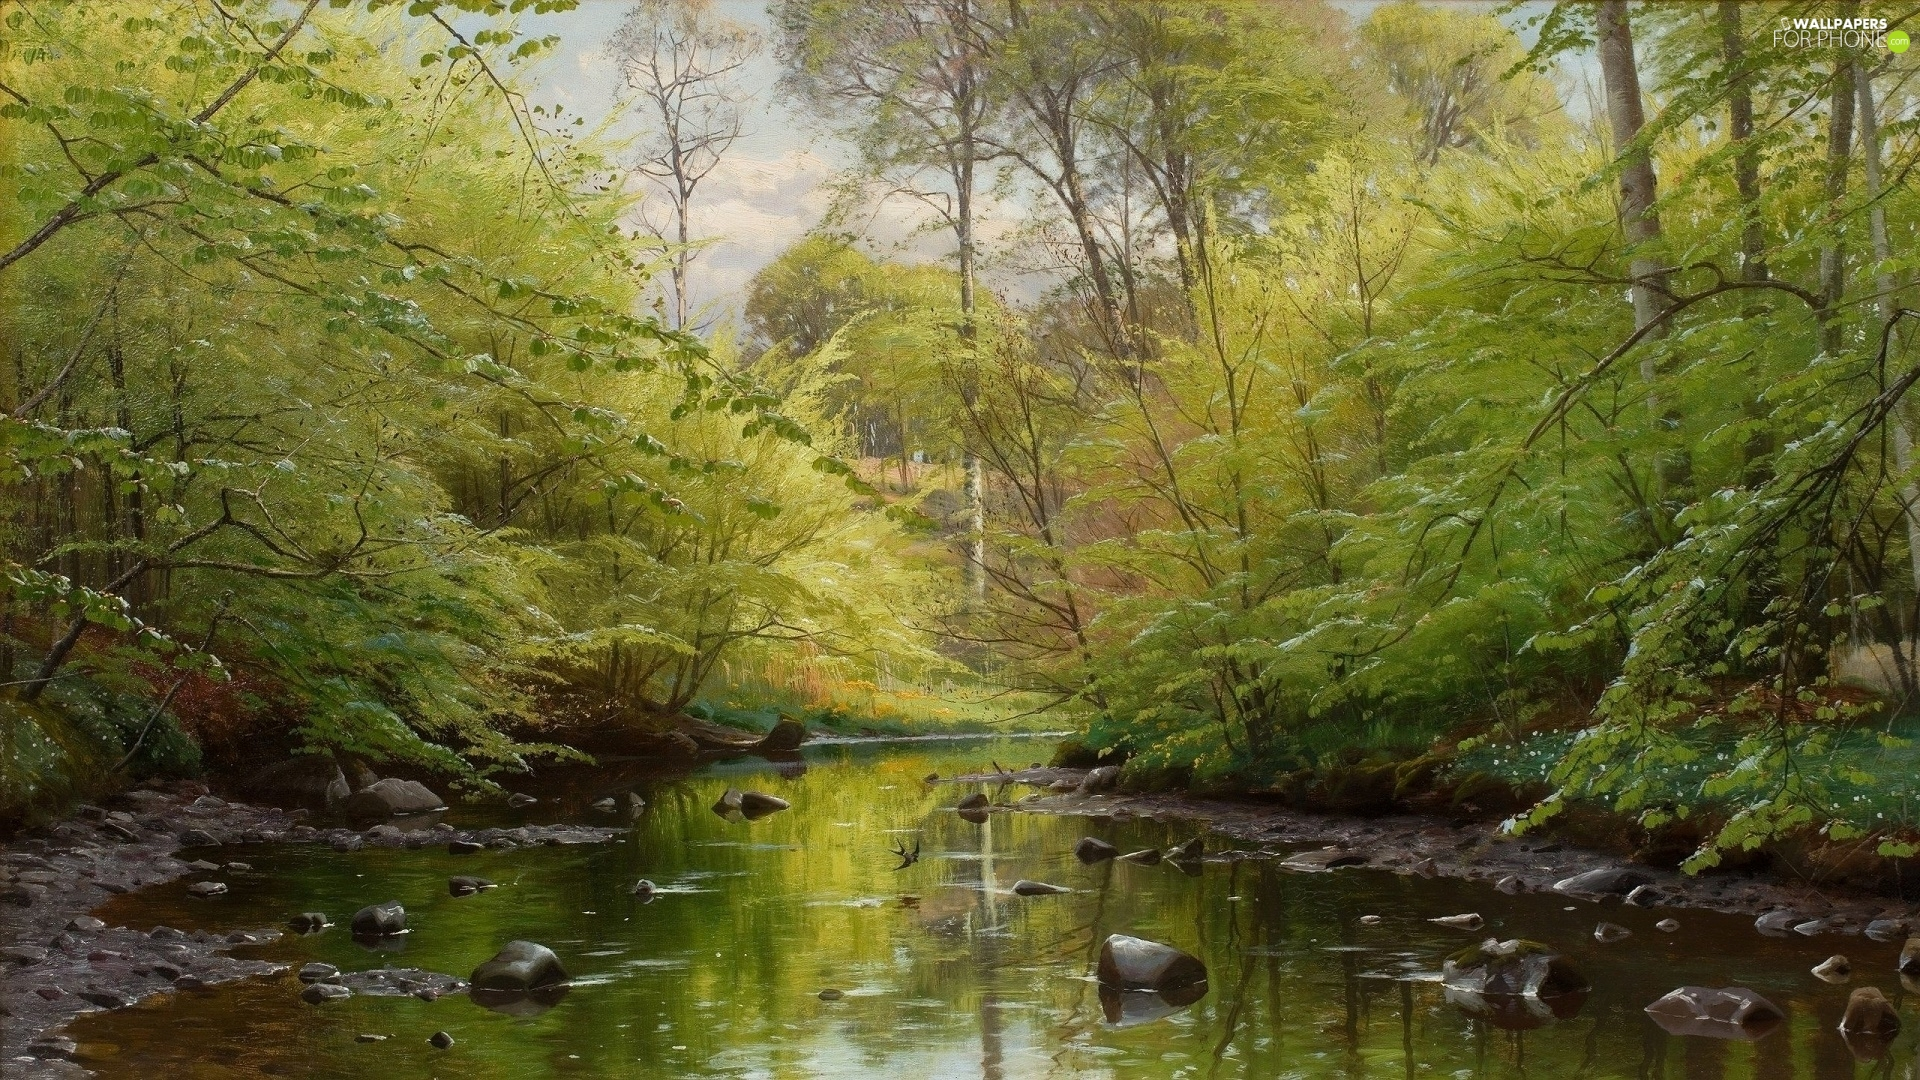 trees, picture, River, forest, Peder Mork Monsted, viewes, Stones